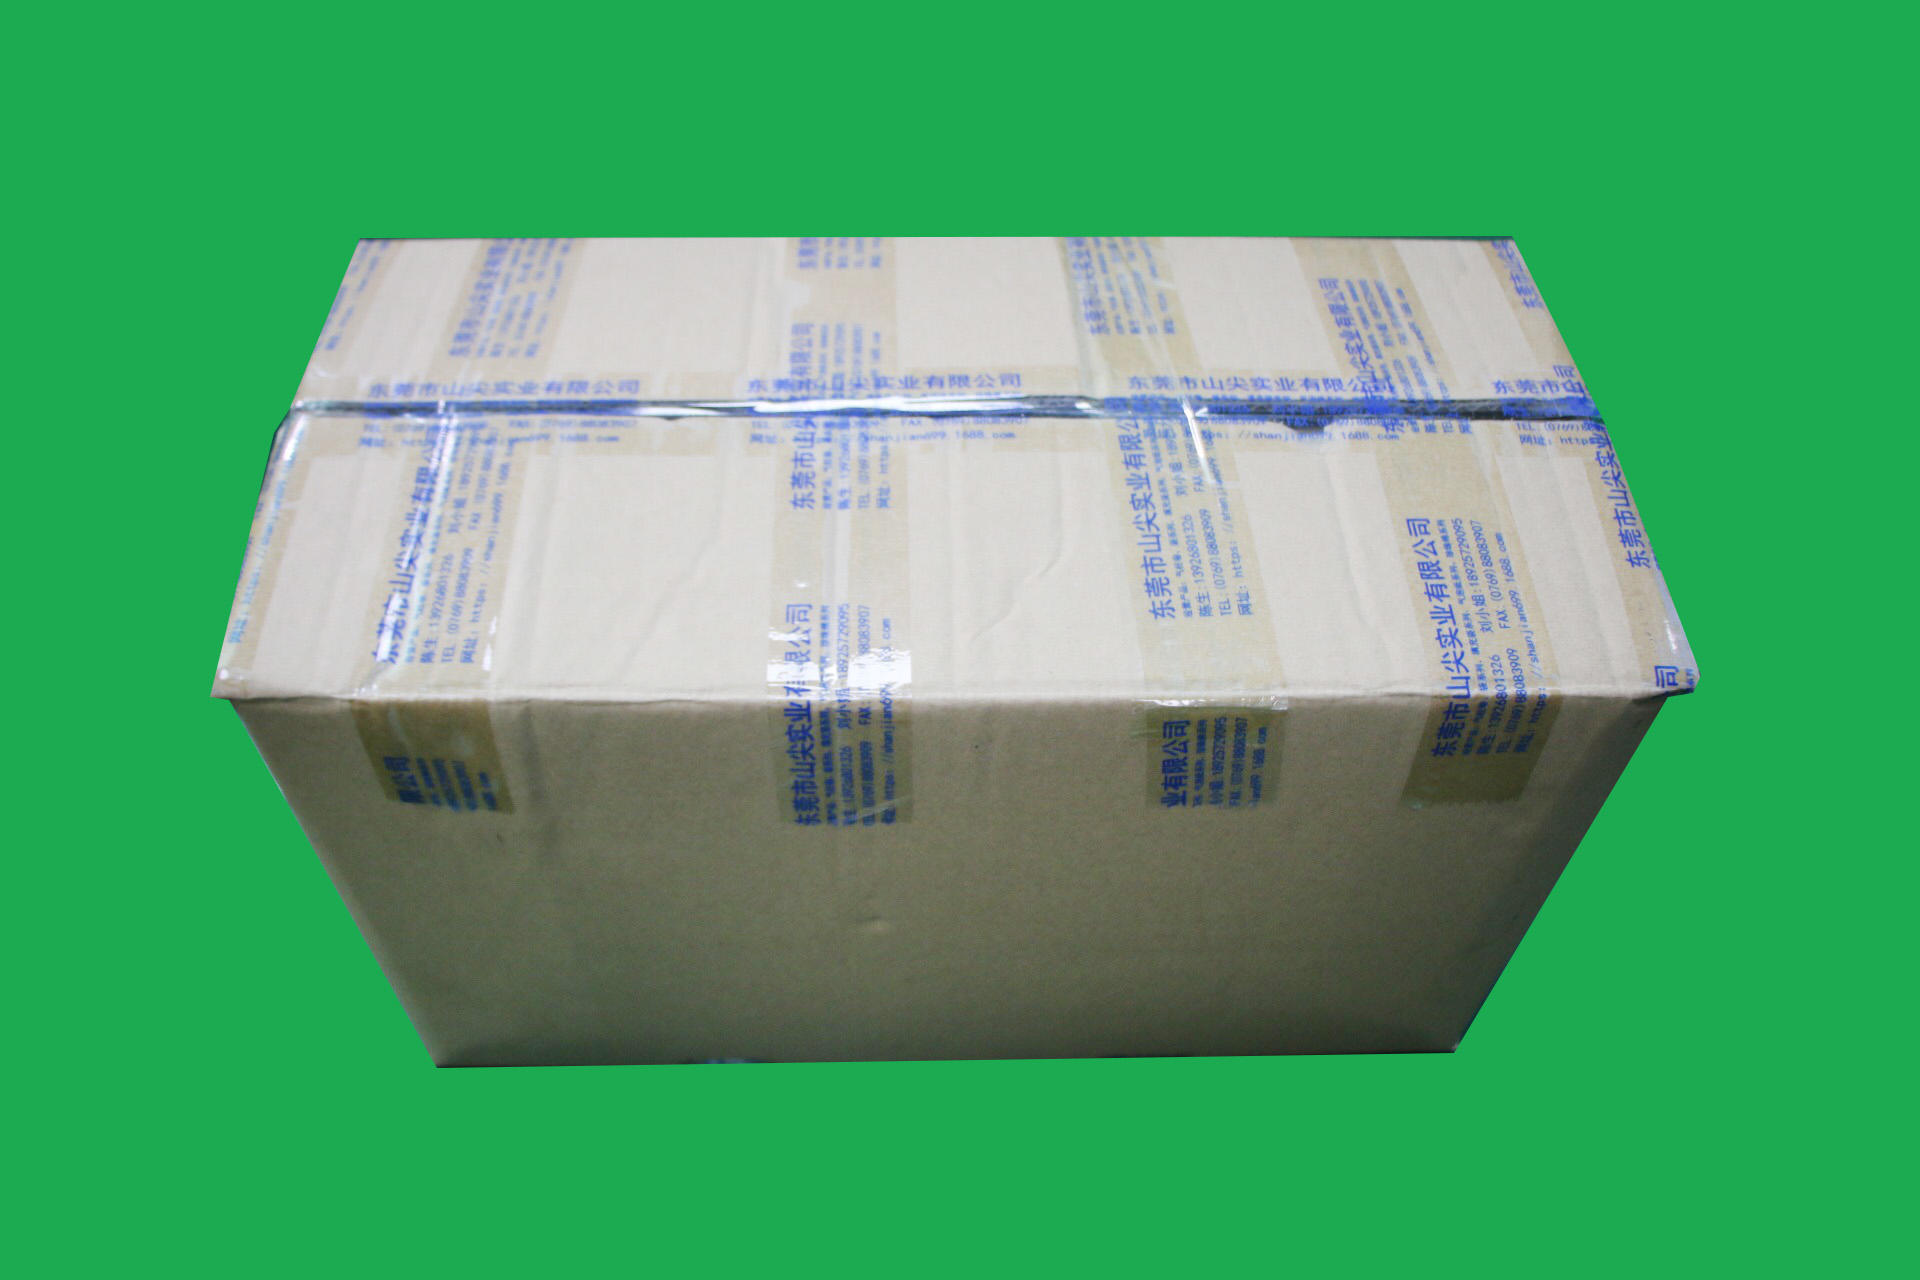 New film cushions ODM company for packing